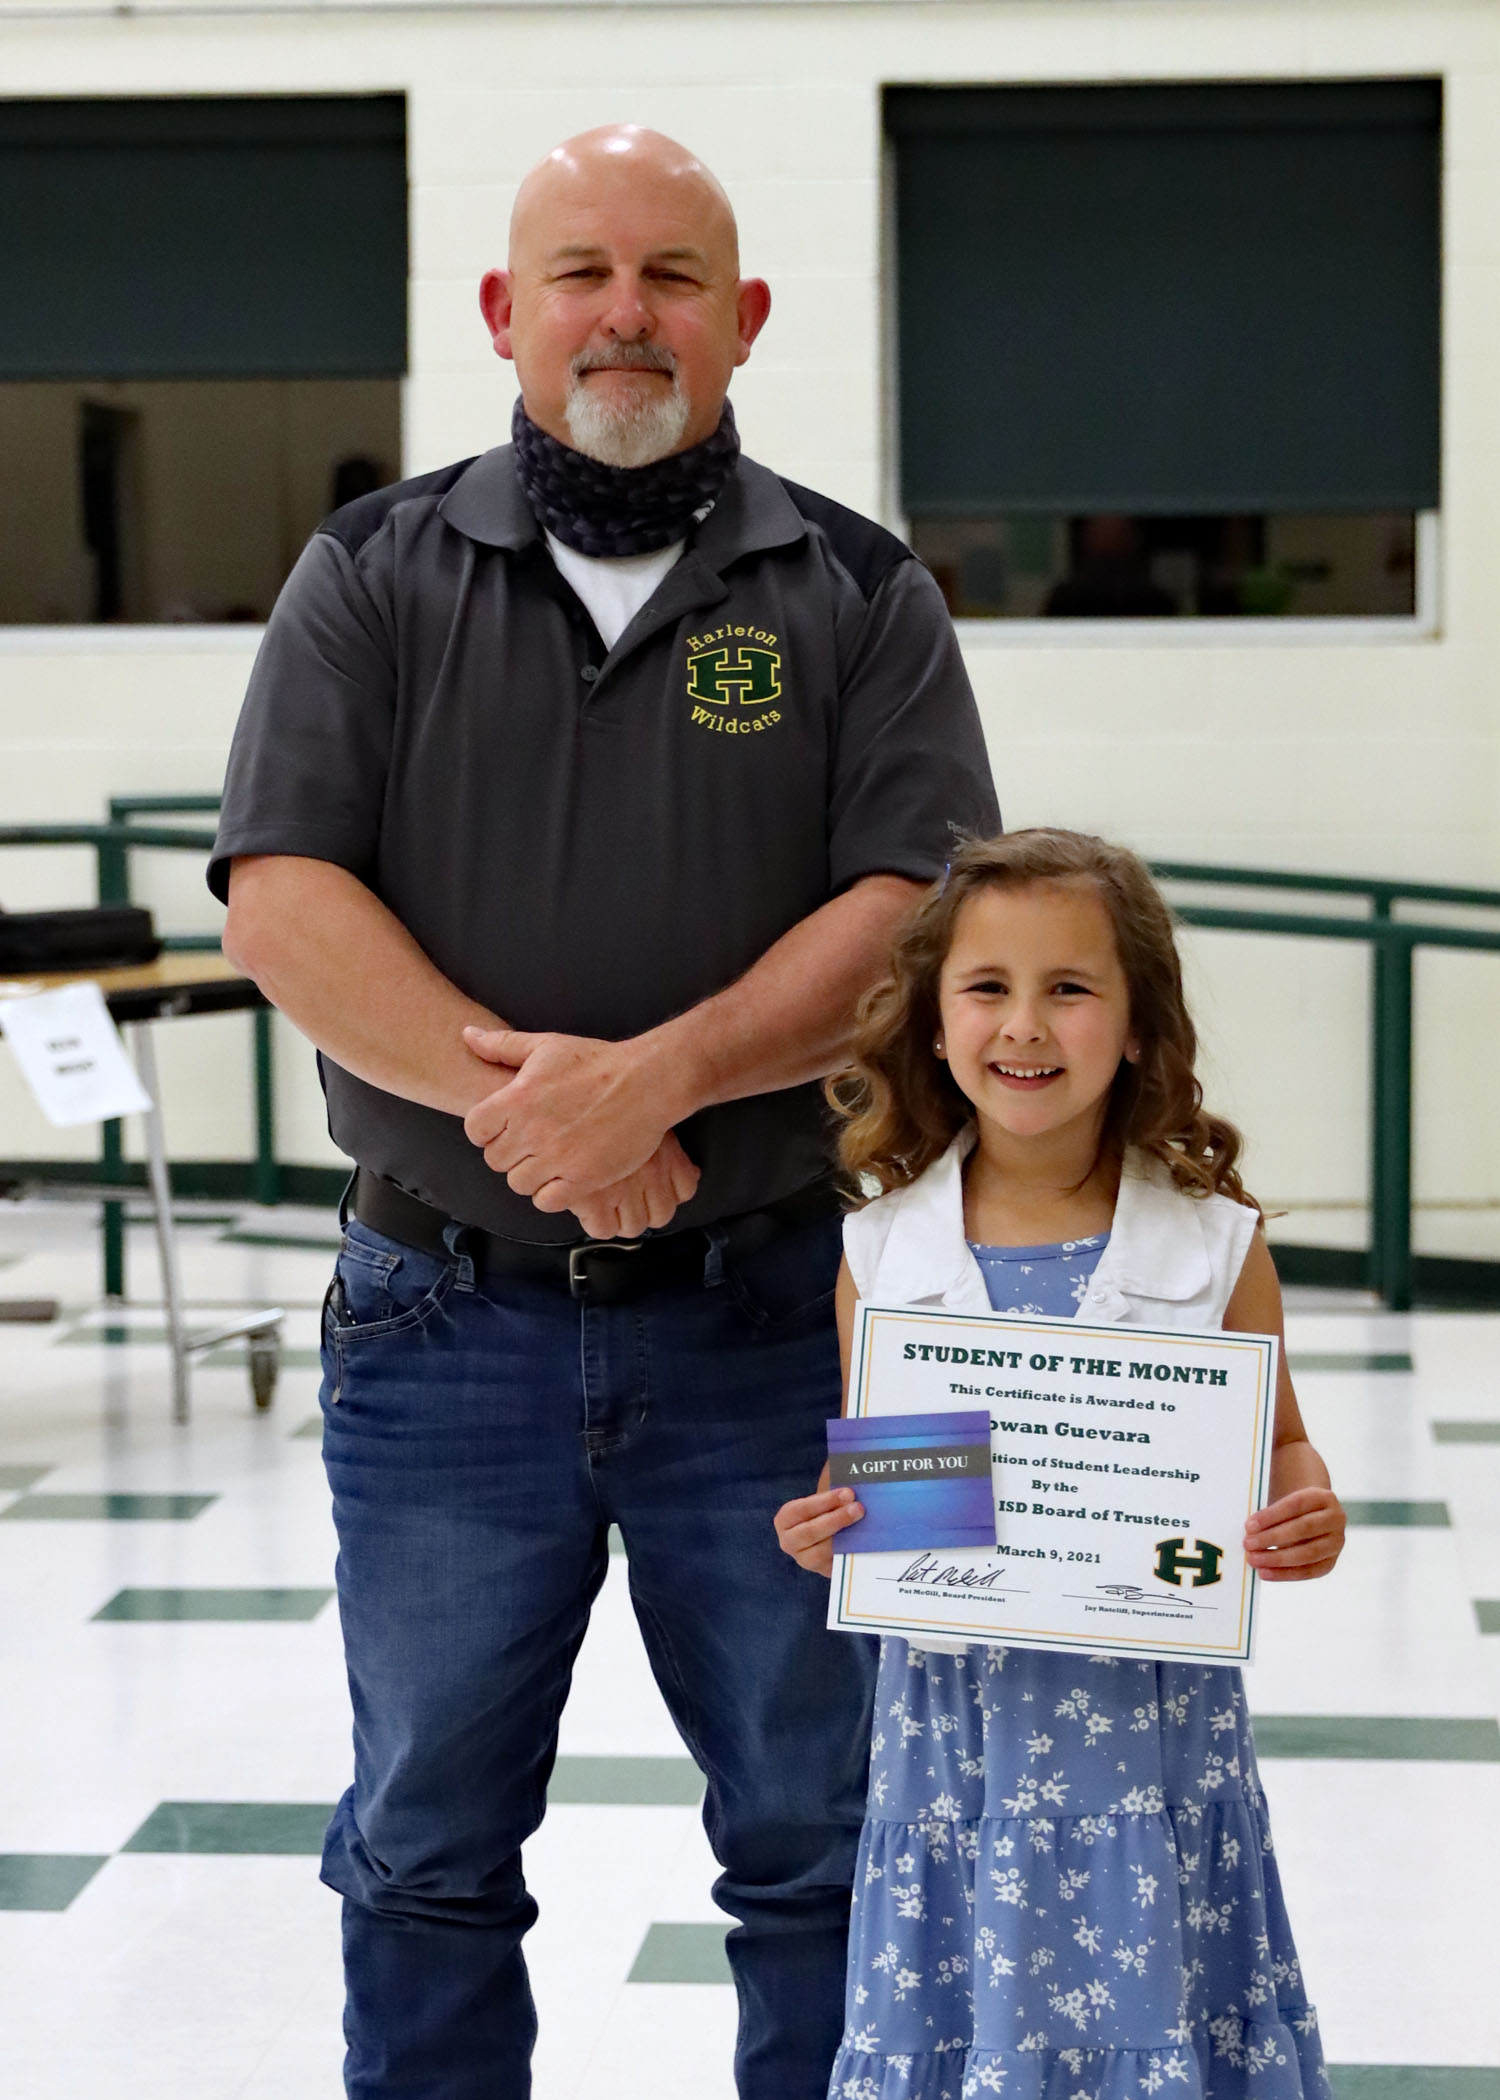 March Student of the Month Rowan Guevara!